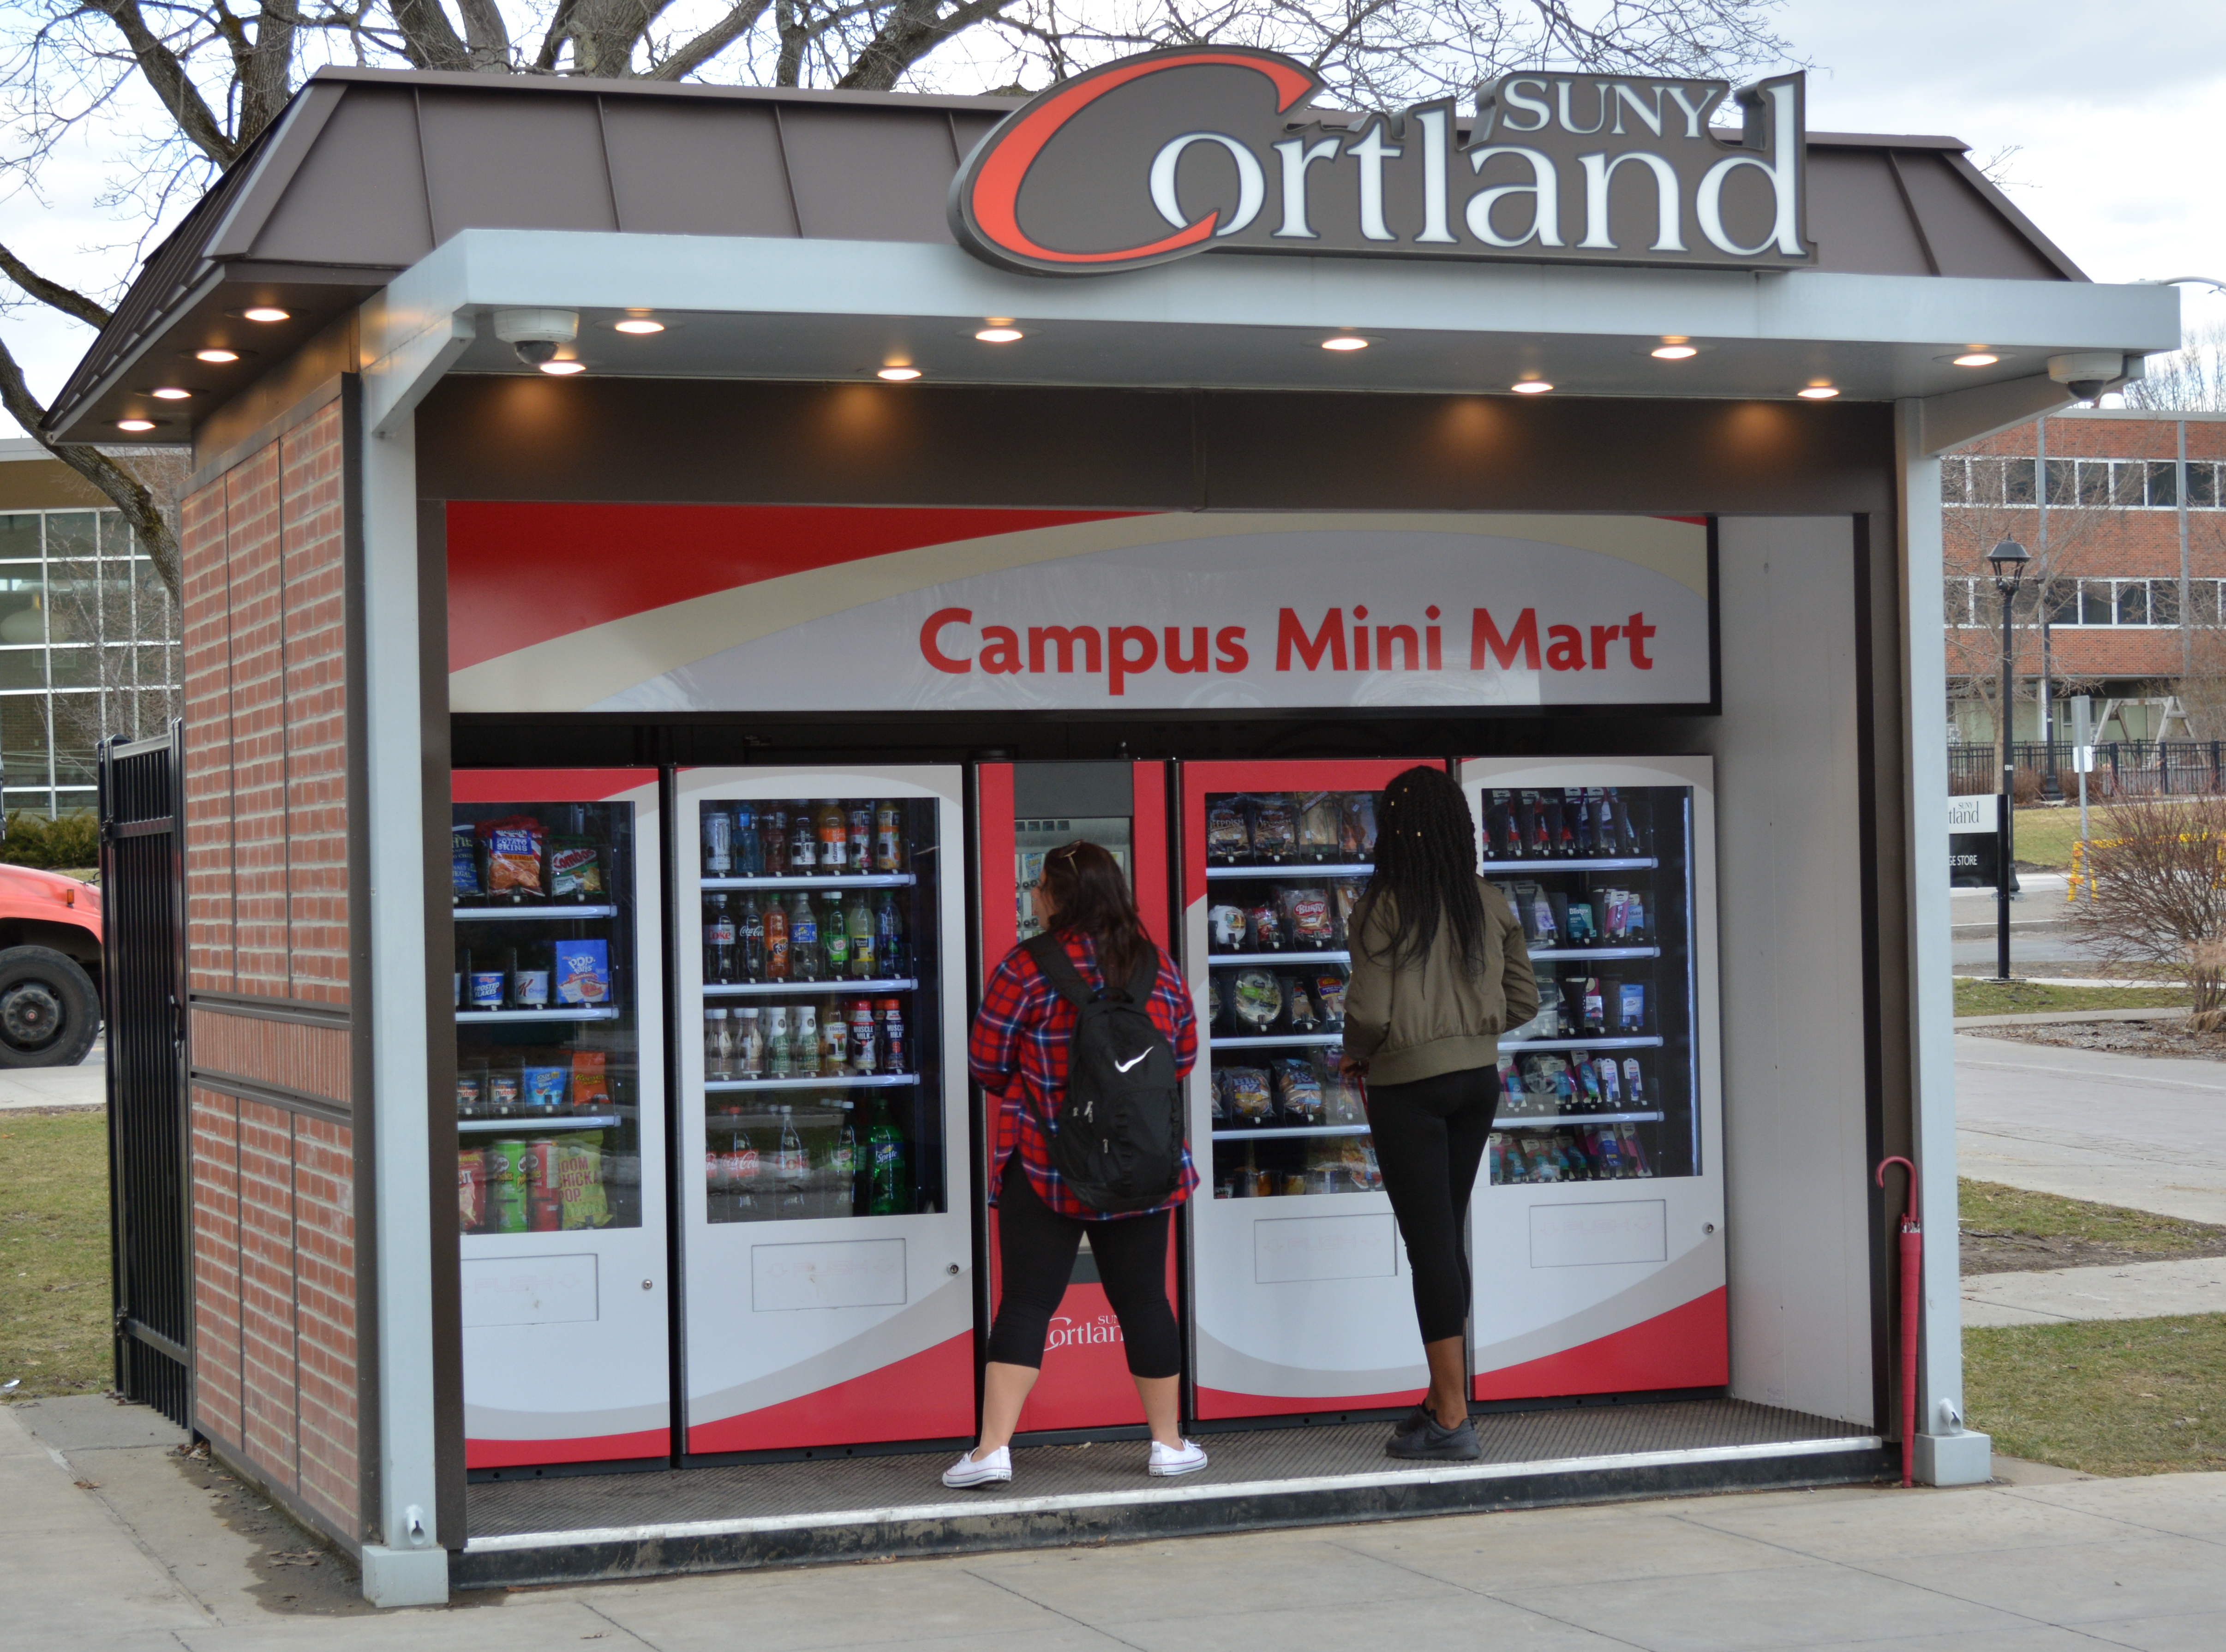 To students using the Campus Mini Mart.